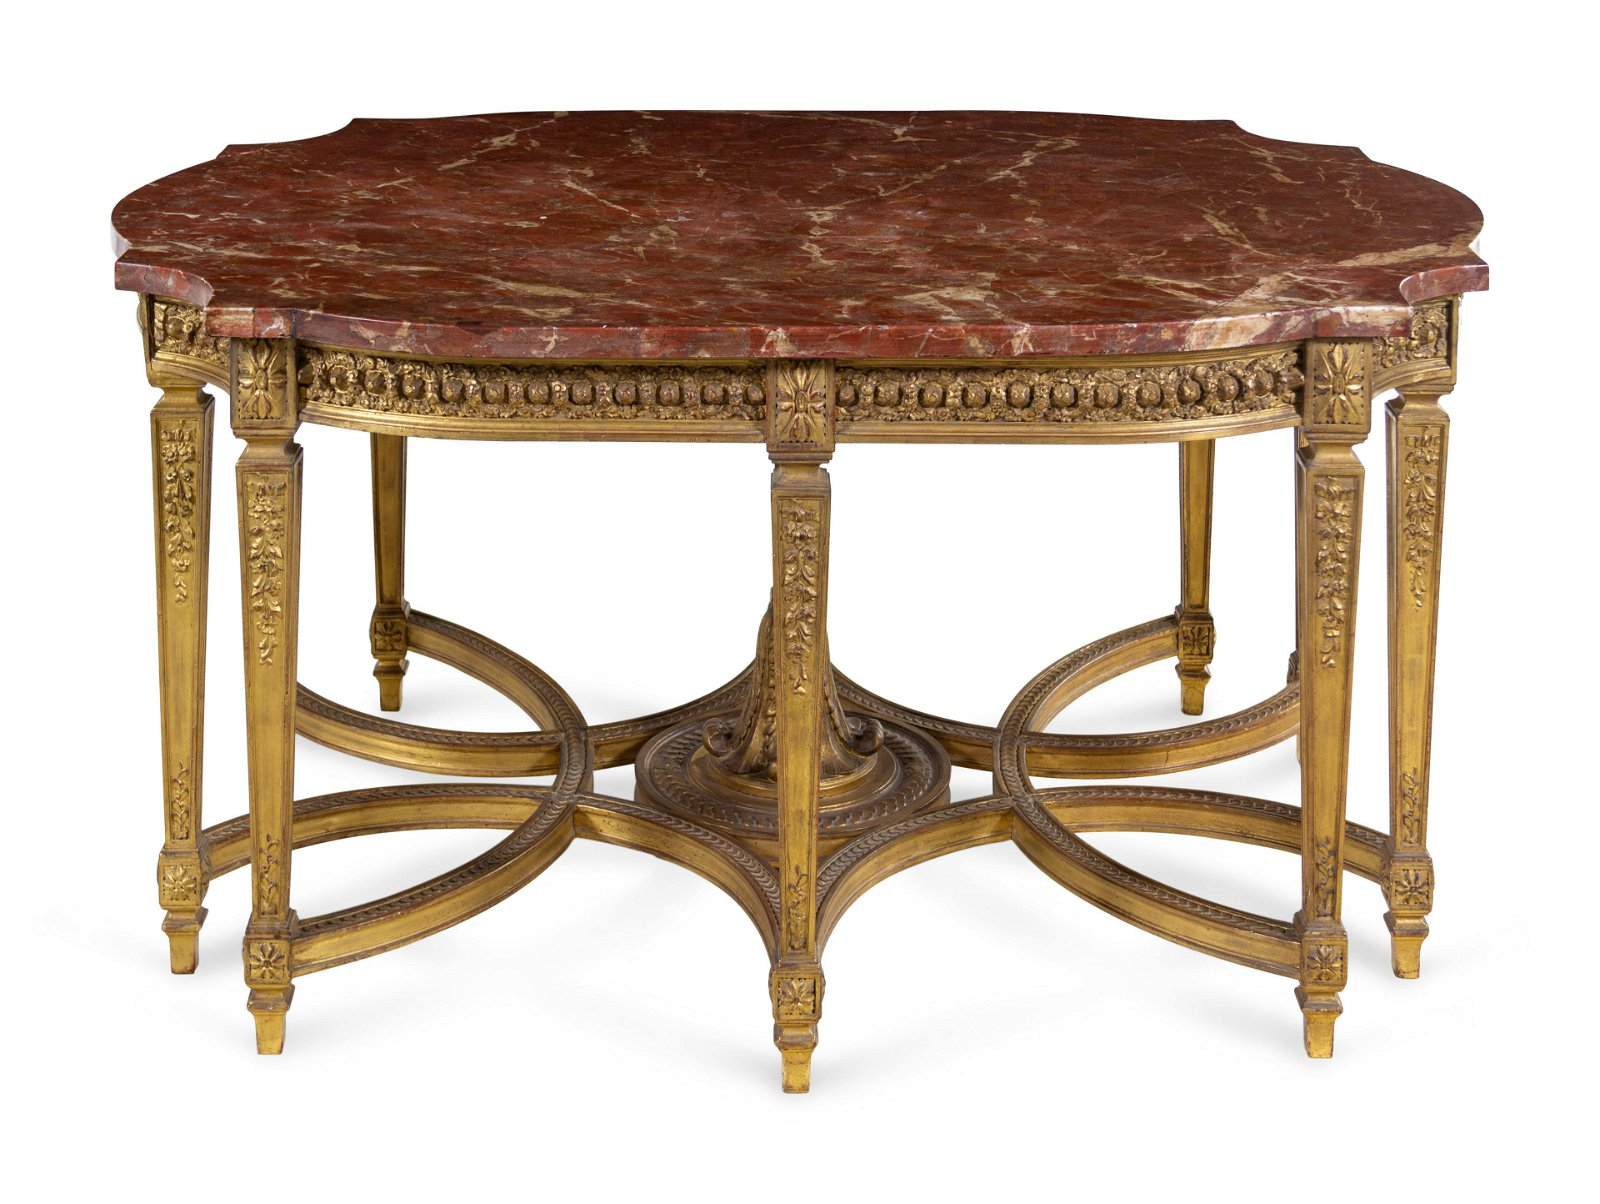 A Louis XVI Style Carved Giltwood Center Table